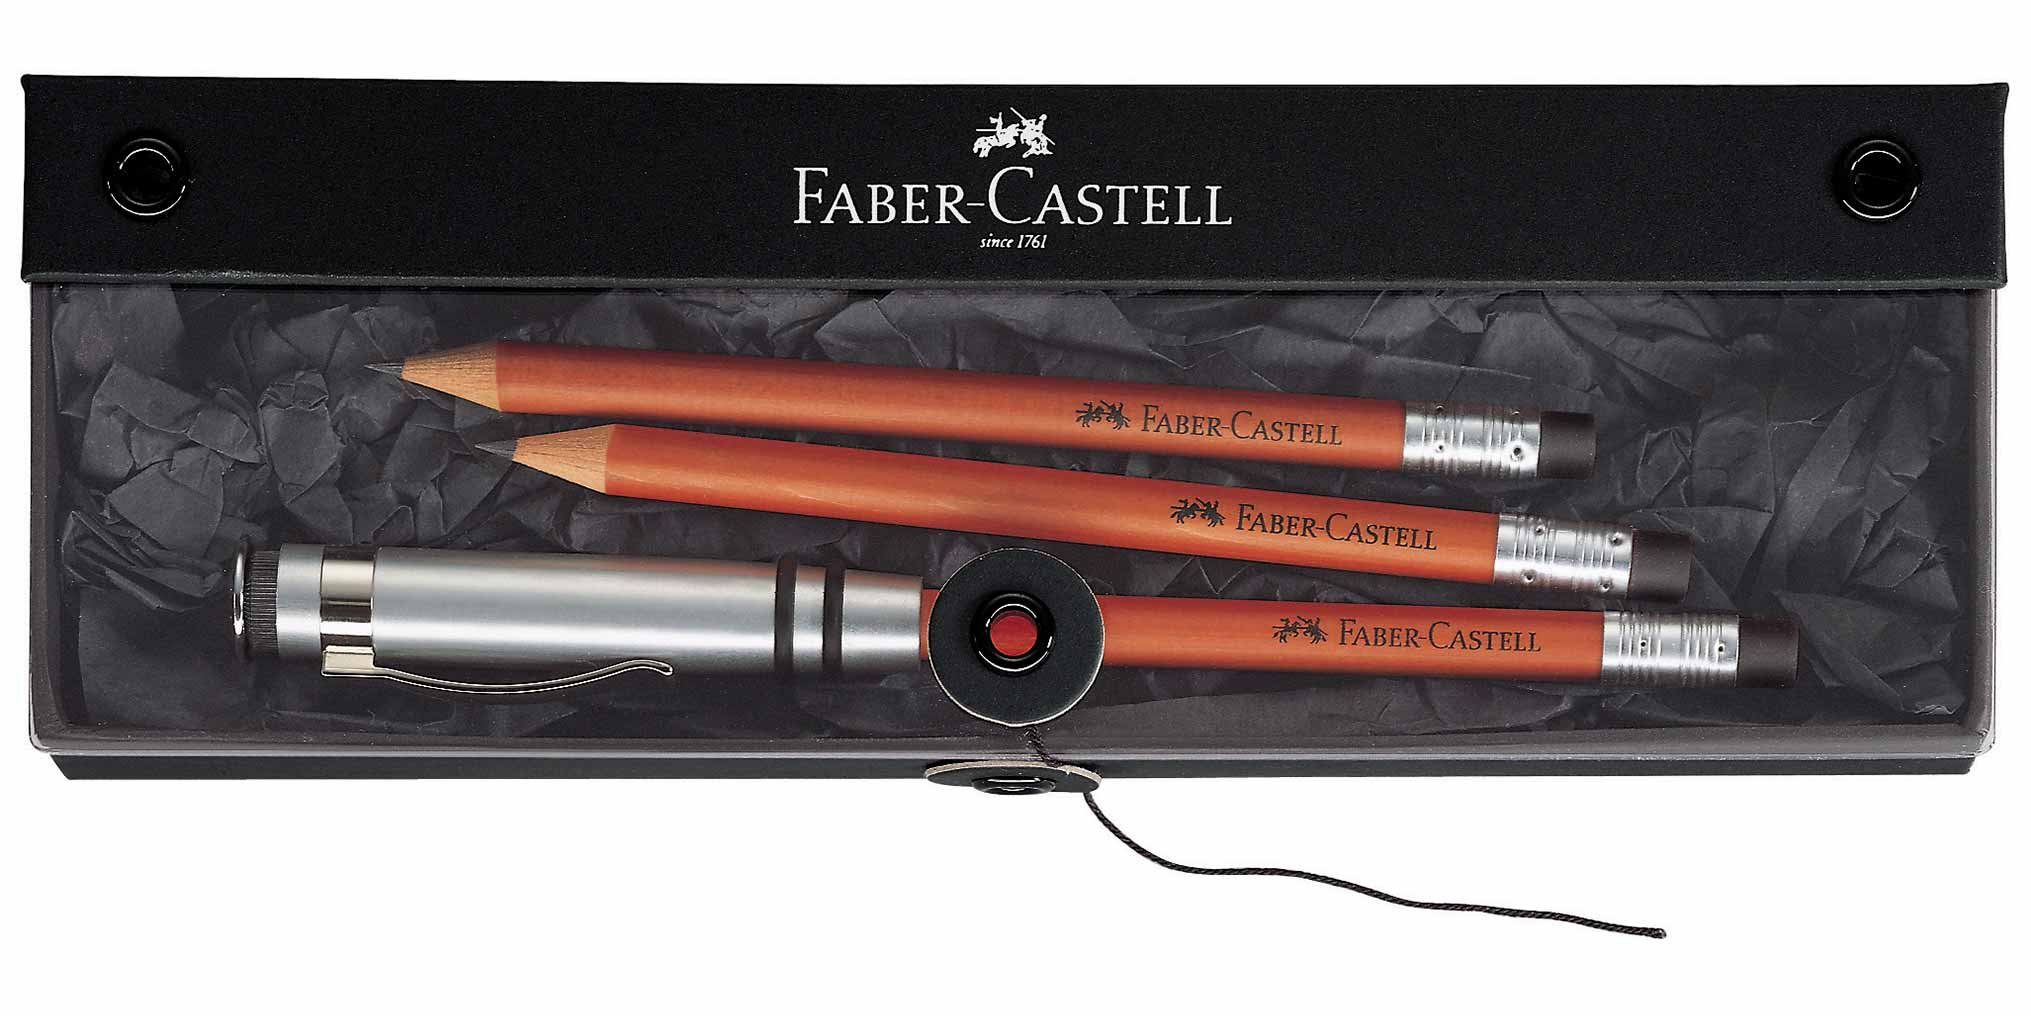 Faber Castell der perfekte Bleistift Design braun Geschenkset perfect pencil Set